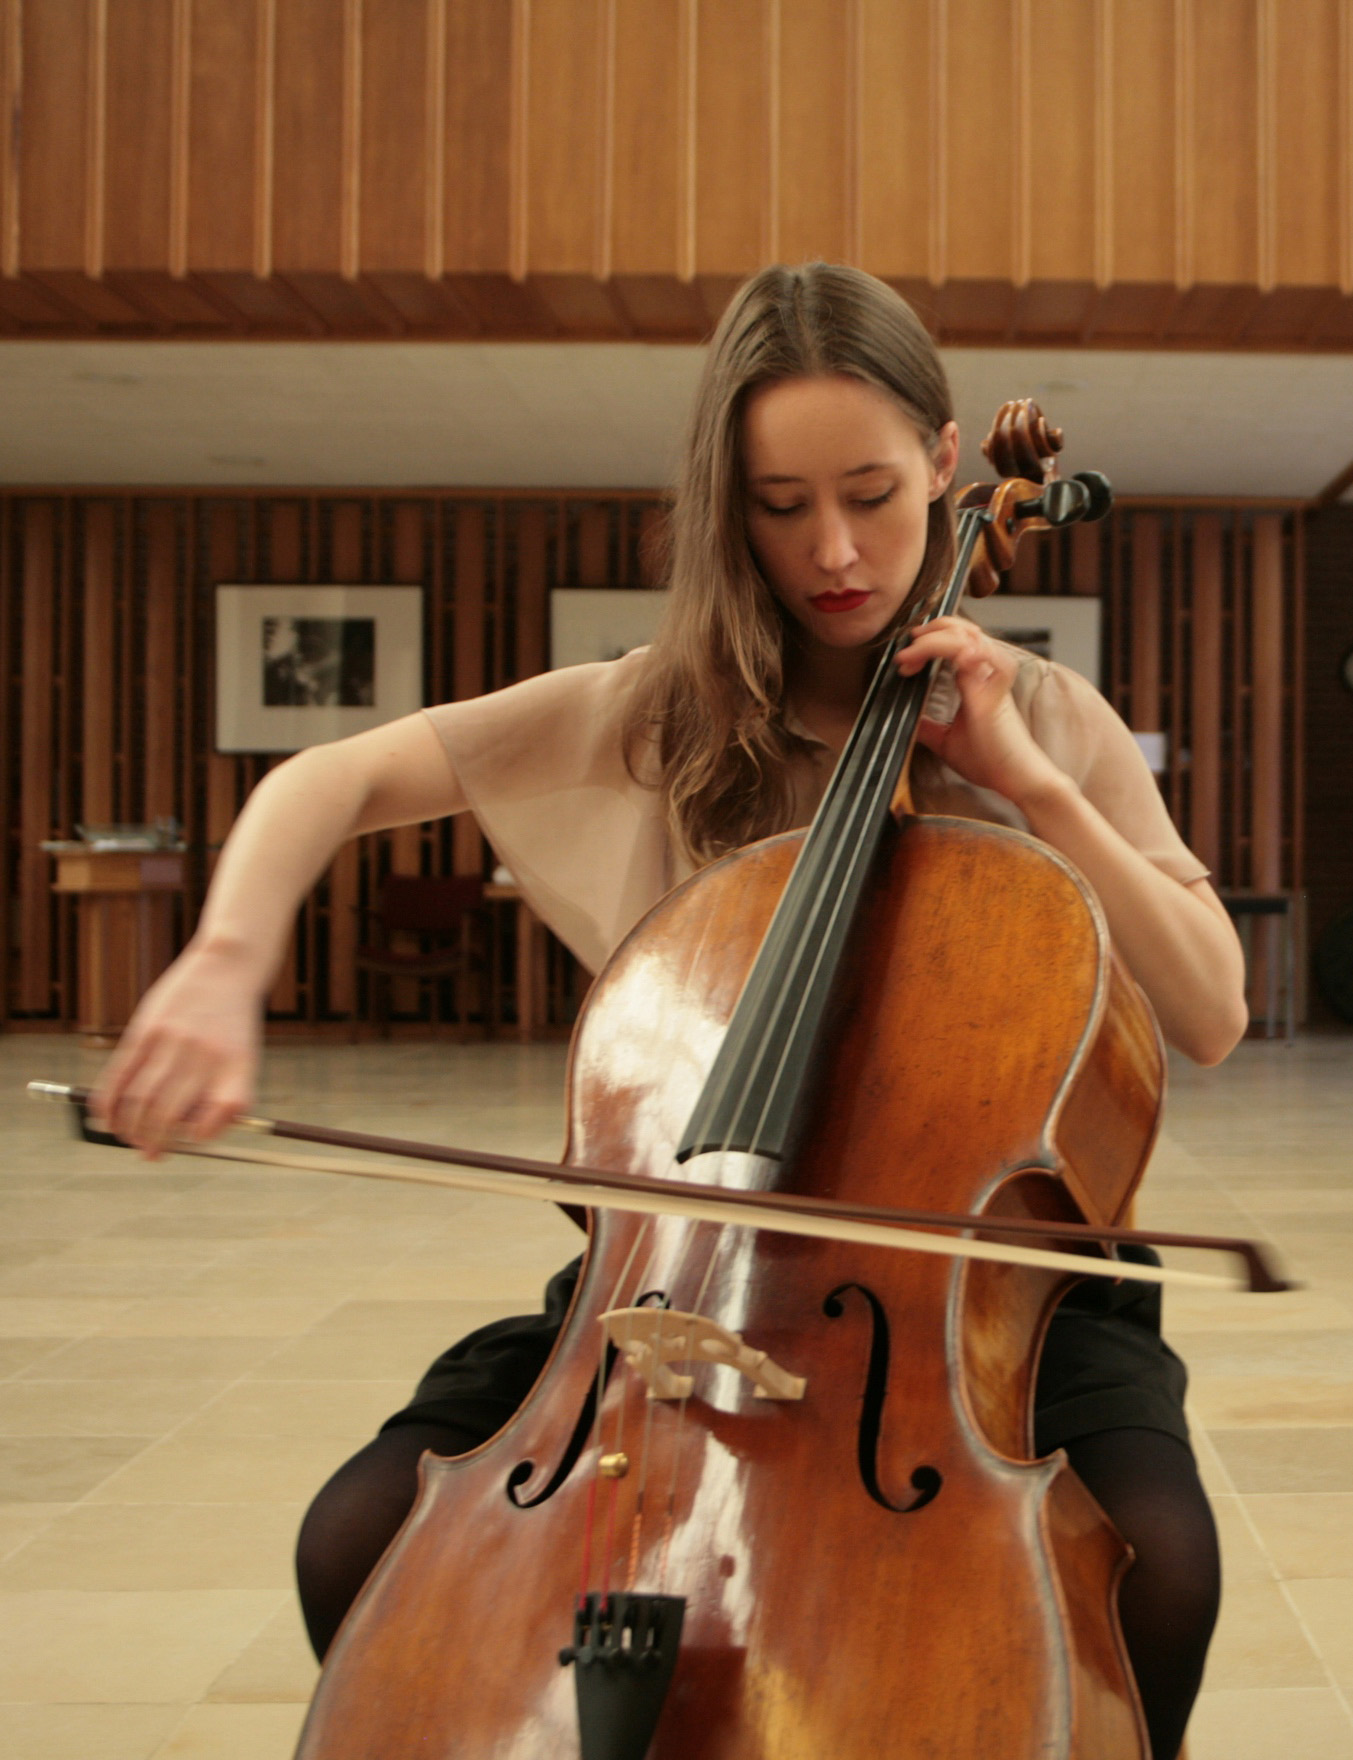 Alexis Castrogiovanni photo, playing cello